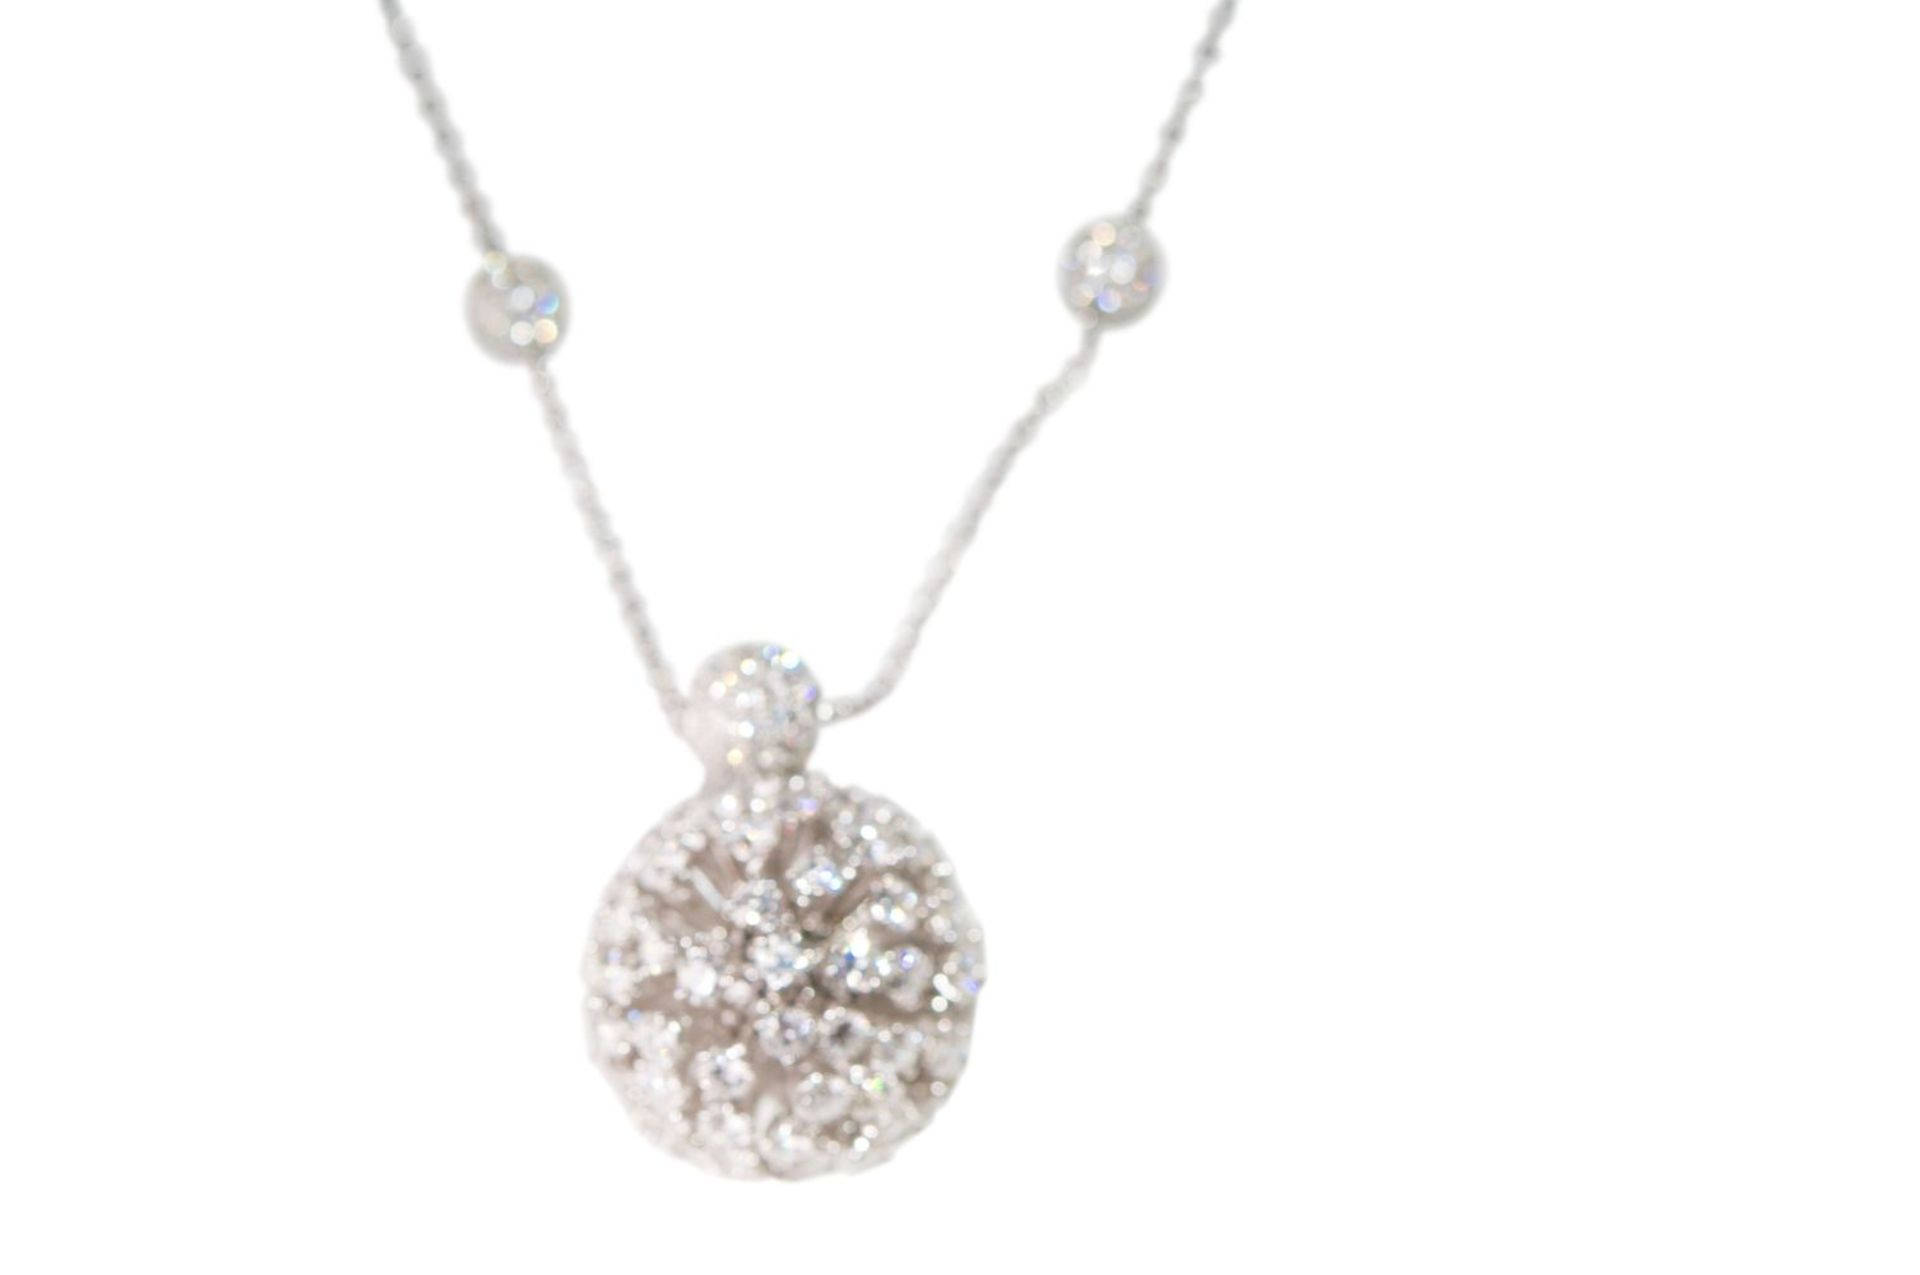 Los 119 - Brillant-Necklace18Kt white gold Necklace with diamonds total carat weight approx.7ct, total